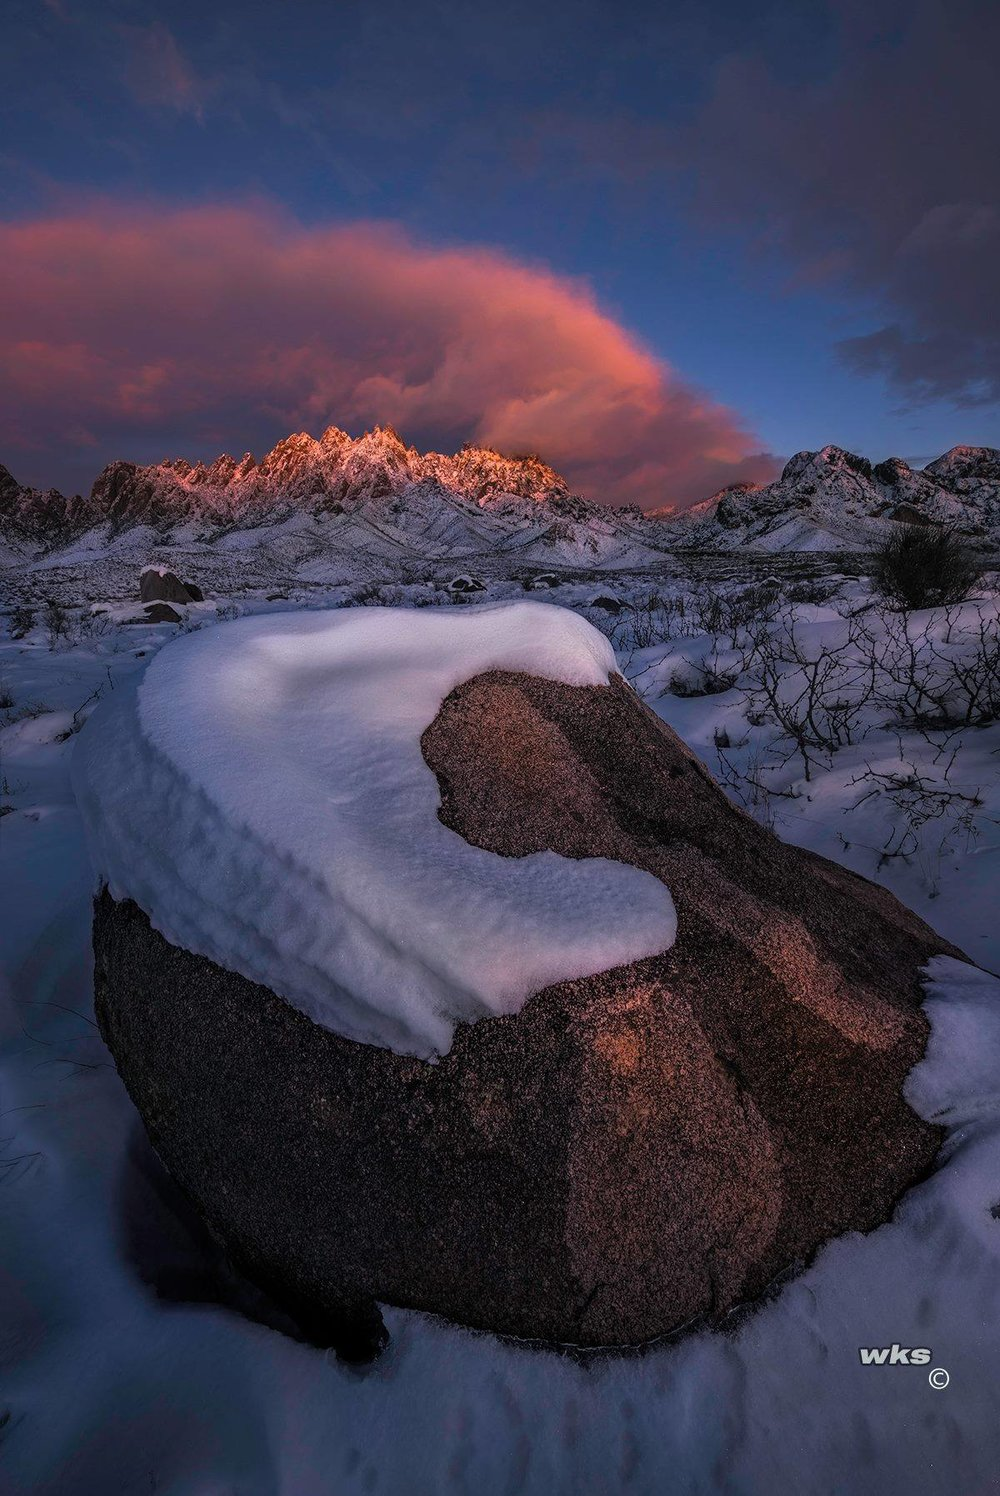 Boulder In The Snow Organ Mountains El Nino sent us a nice present on the day after Christmas. I had to get out and take photos of our Organ Mountains here in Southern New Mexico. Wayne Suggs Photography   https://waynesuggsphotography.smugmug.com/